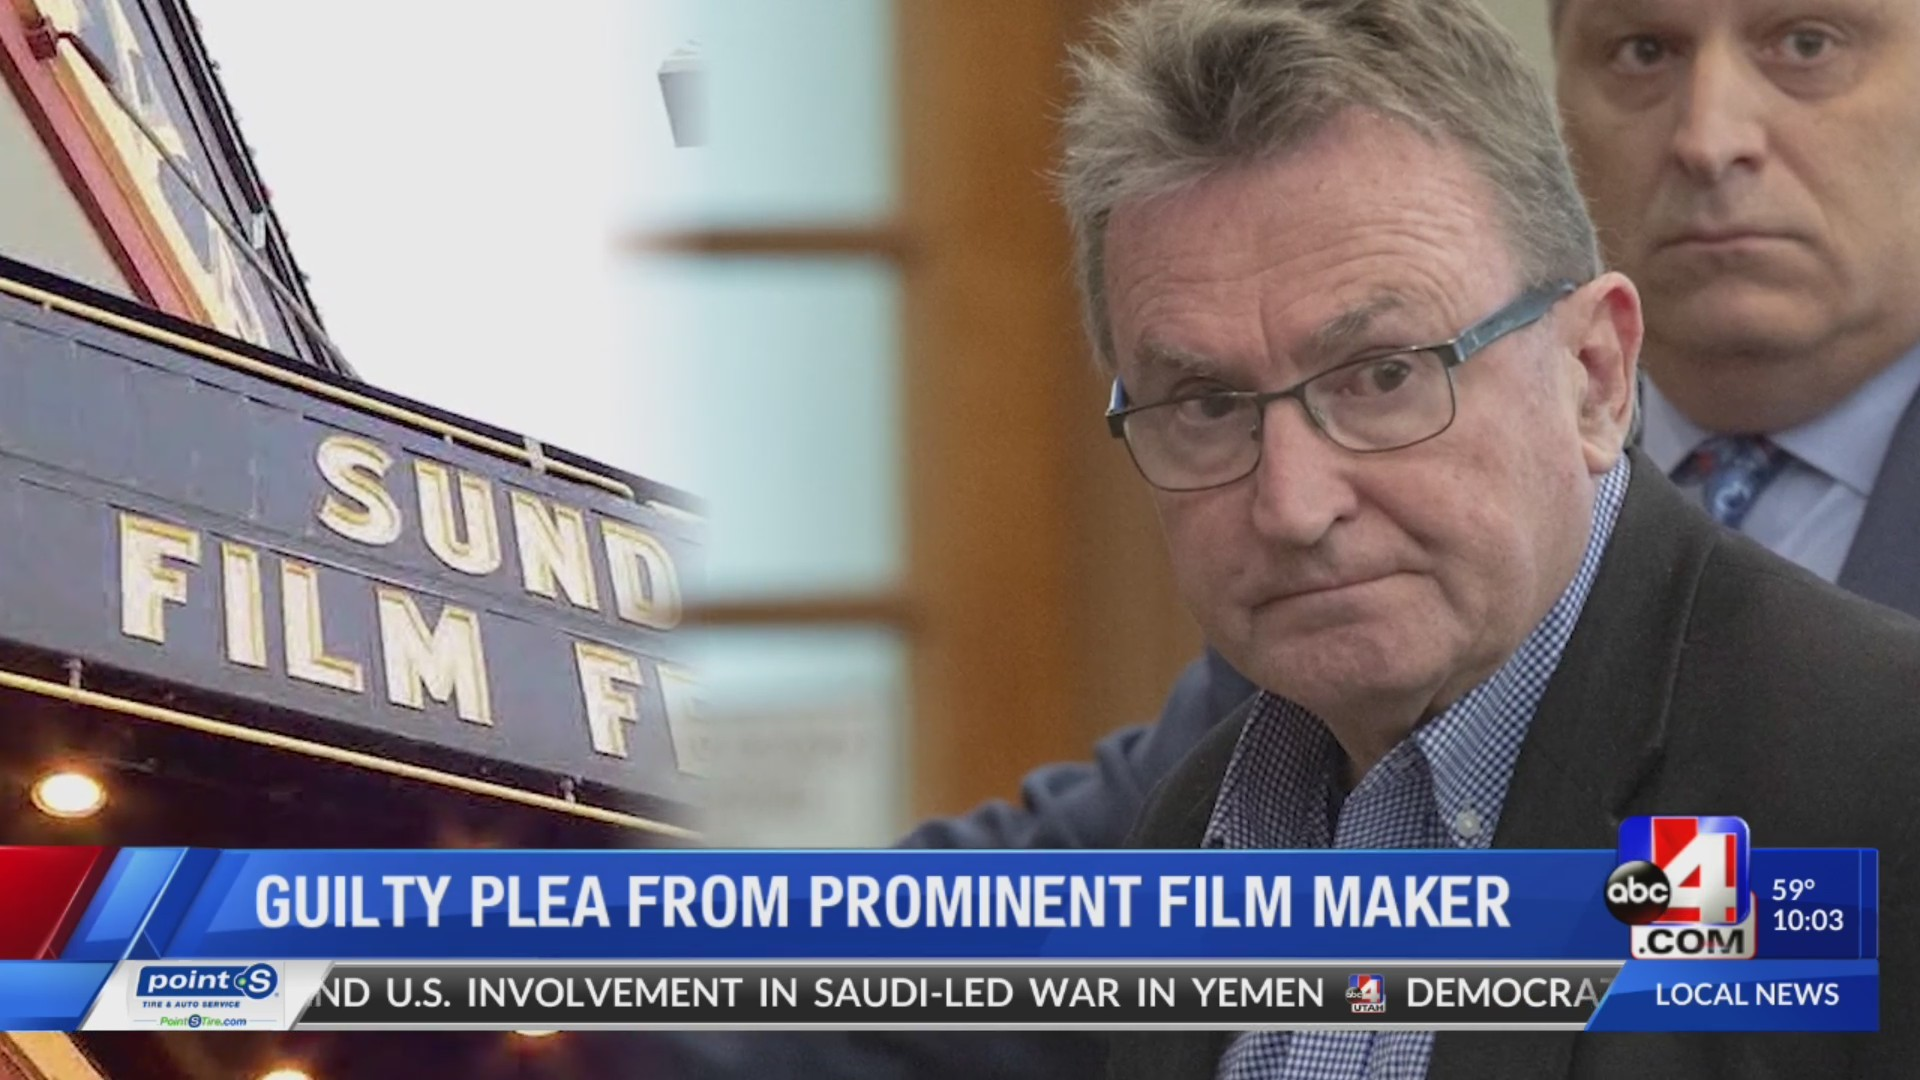 Guilty: prominent film maker enters plea in child abuse case